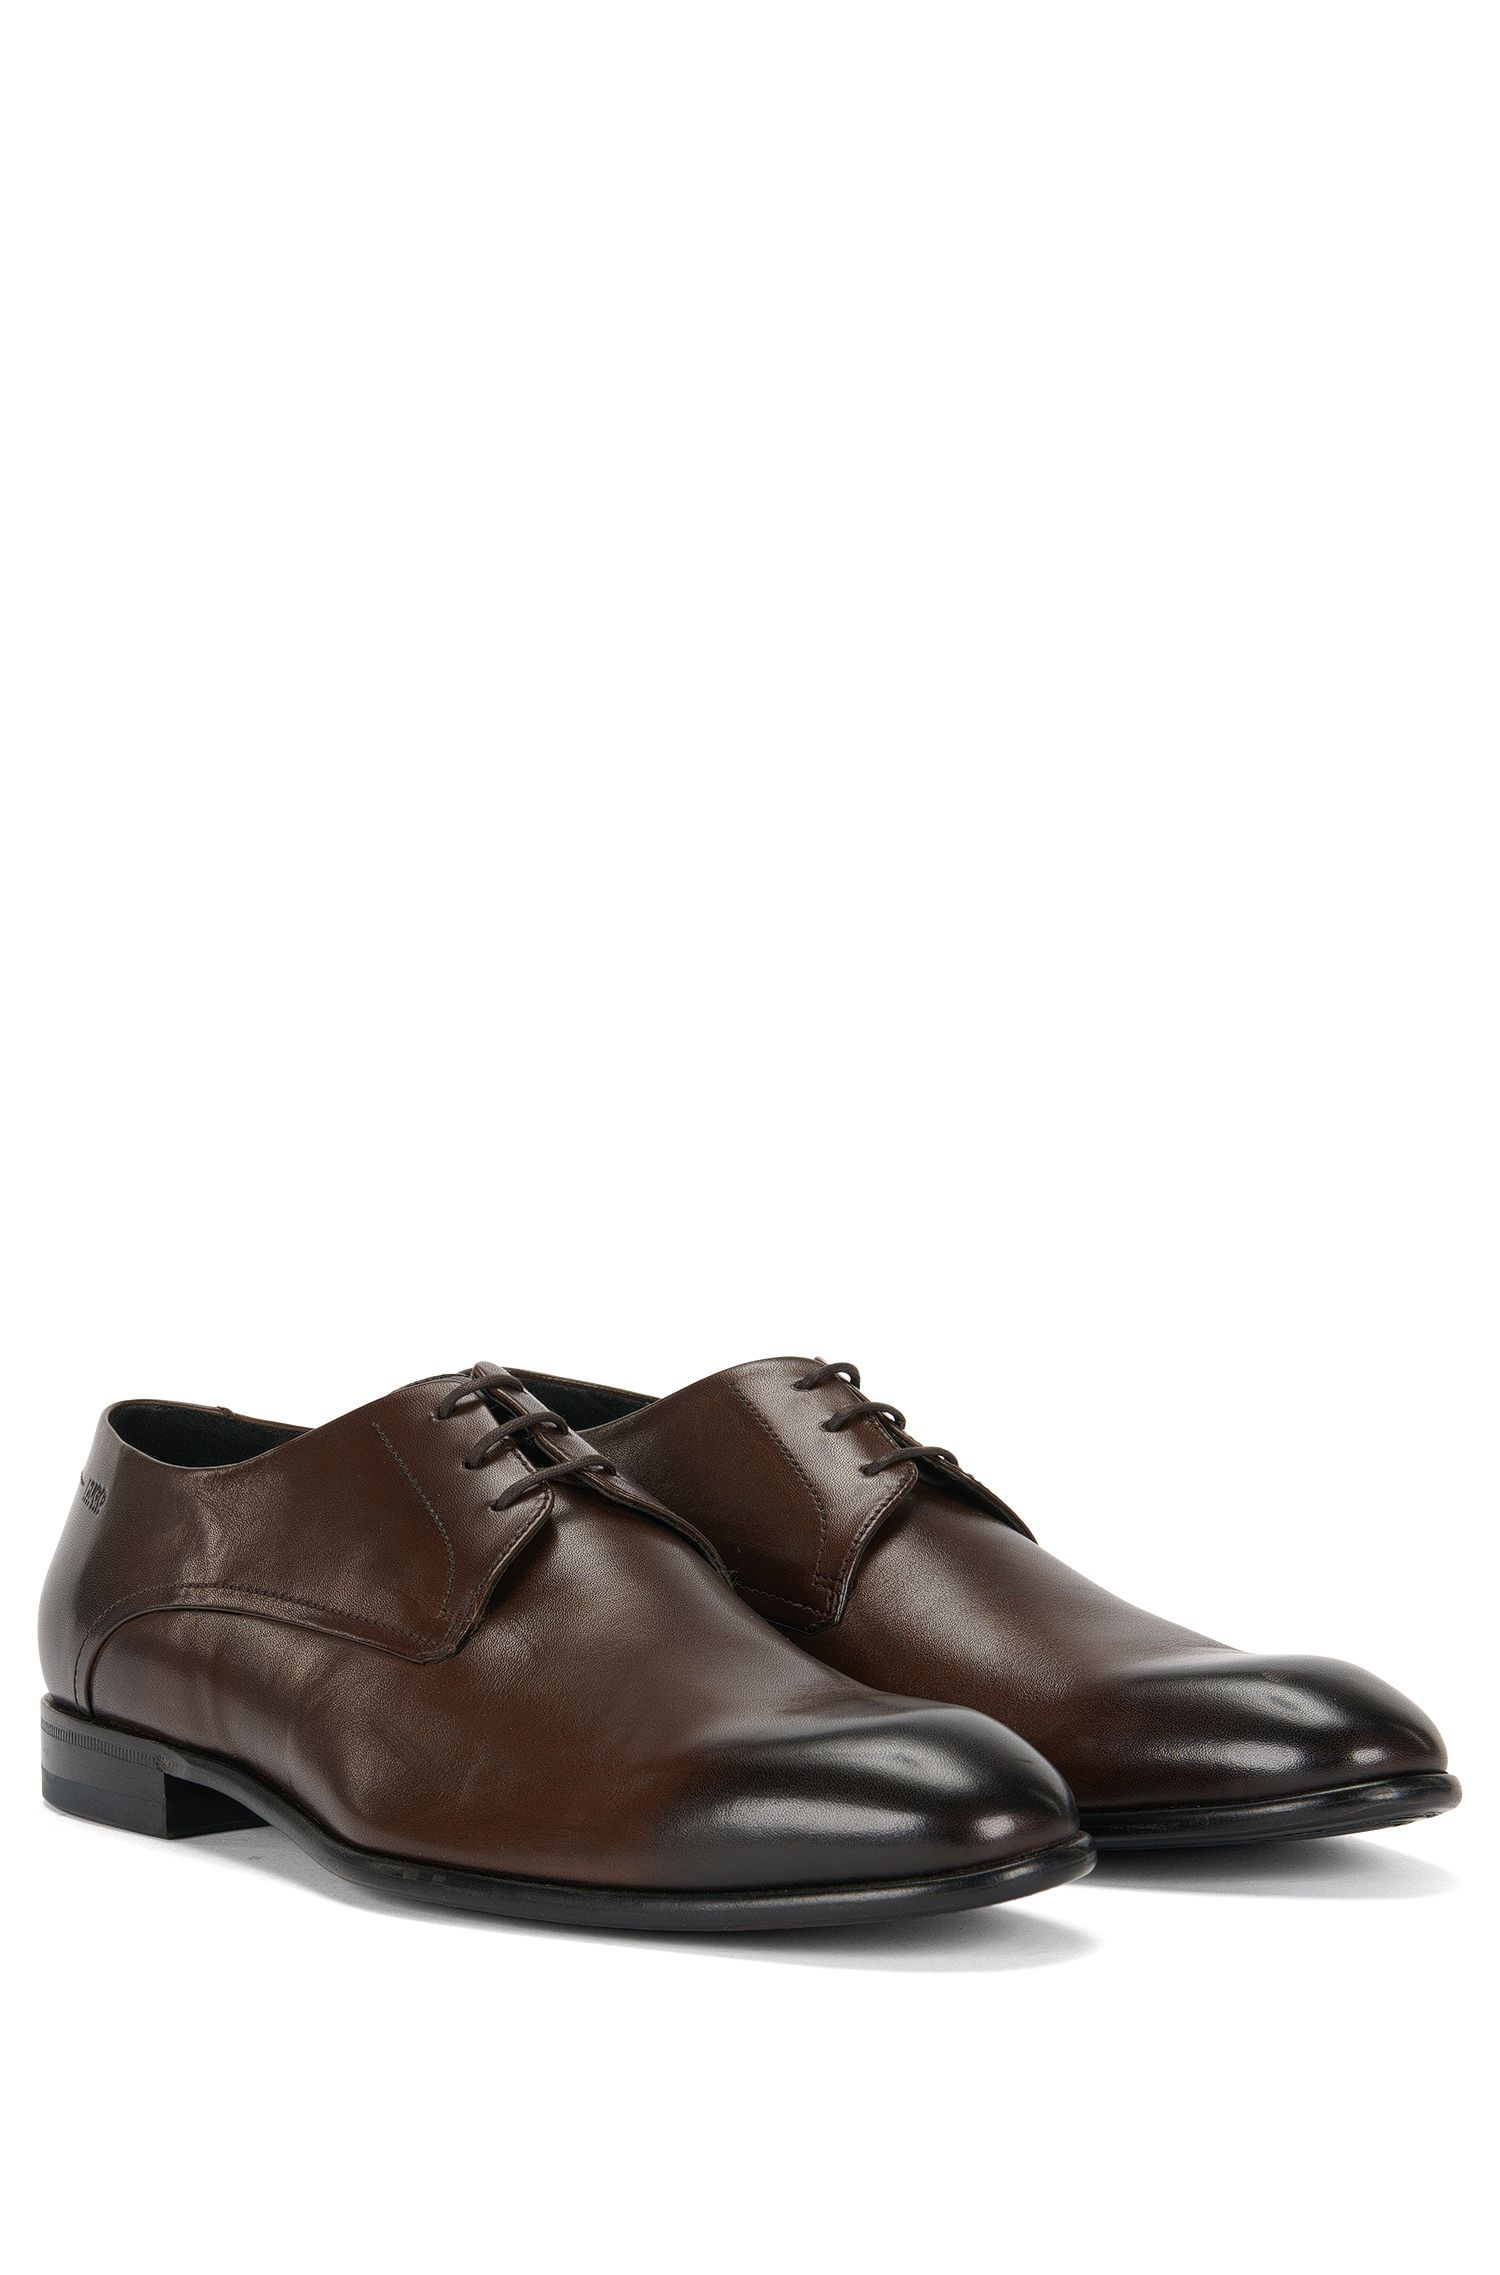 'C-Dresios' | Calfskin Derby Dress Shoes